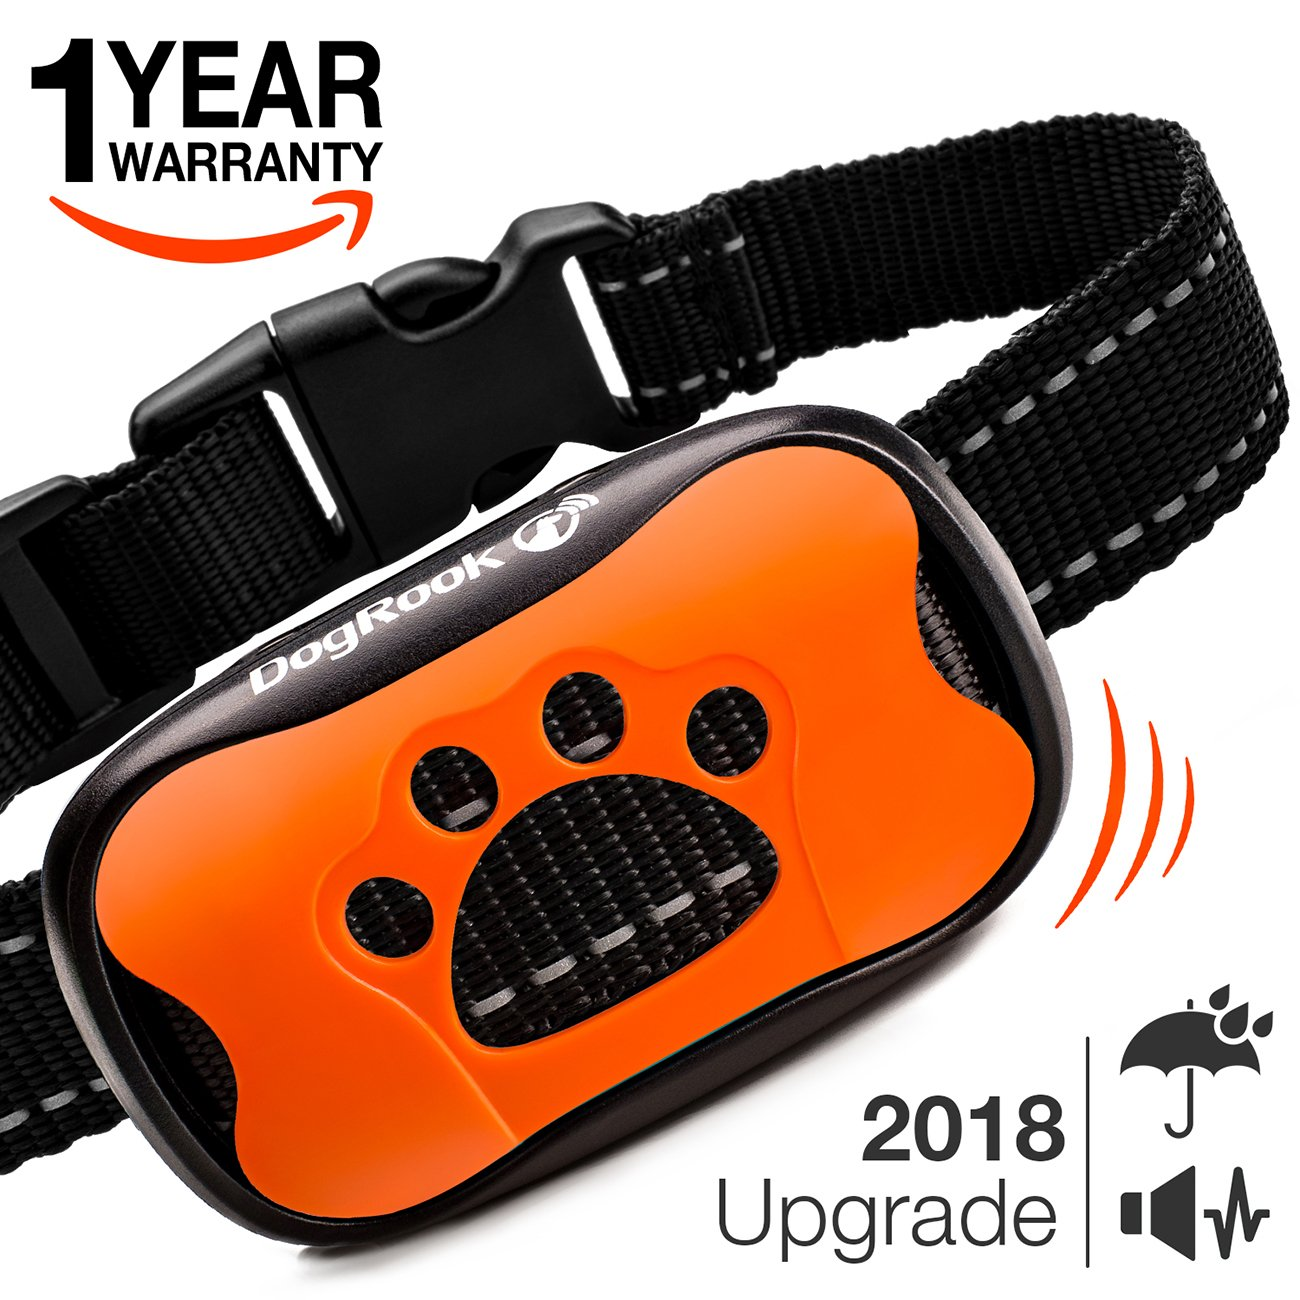 Dog Bark Collar Upgrade 2018 - Vibration No Shock Collar - Humane Anti Bark Training Collar - Stop Barking Collar for Small Medium Large Dogs - Best No Bark Control Collar - Pet Safe Waterproof Device